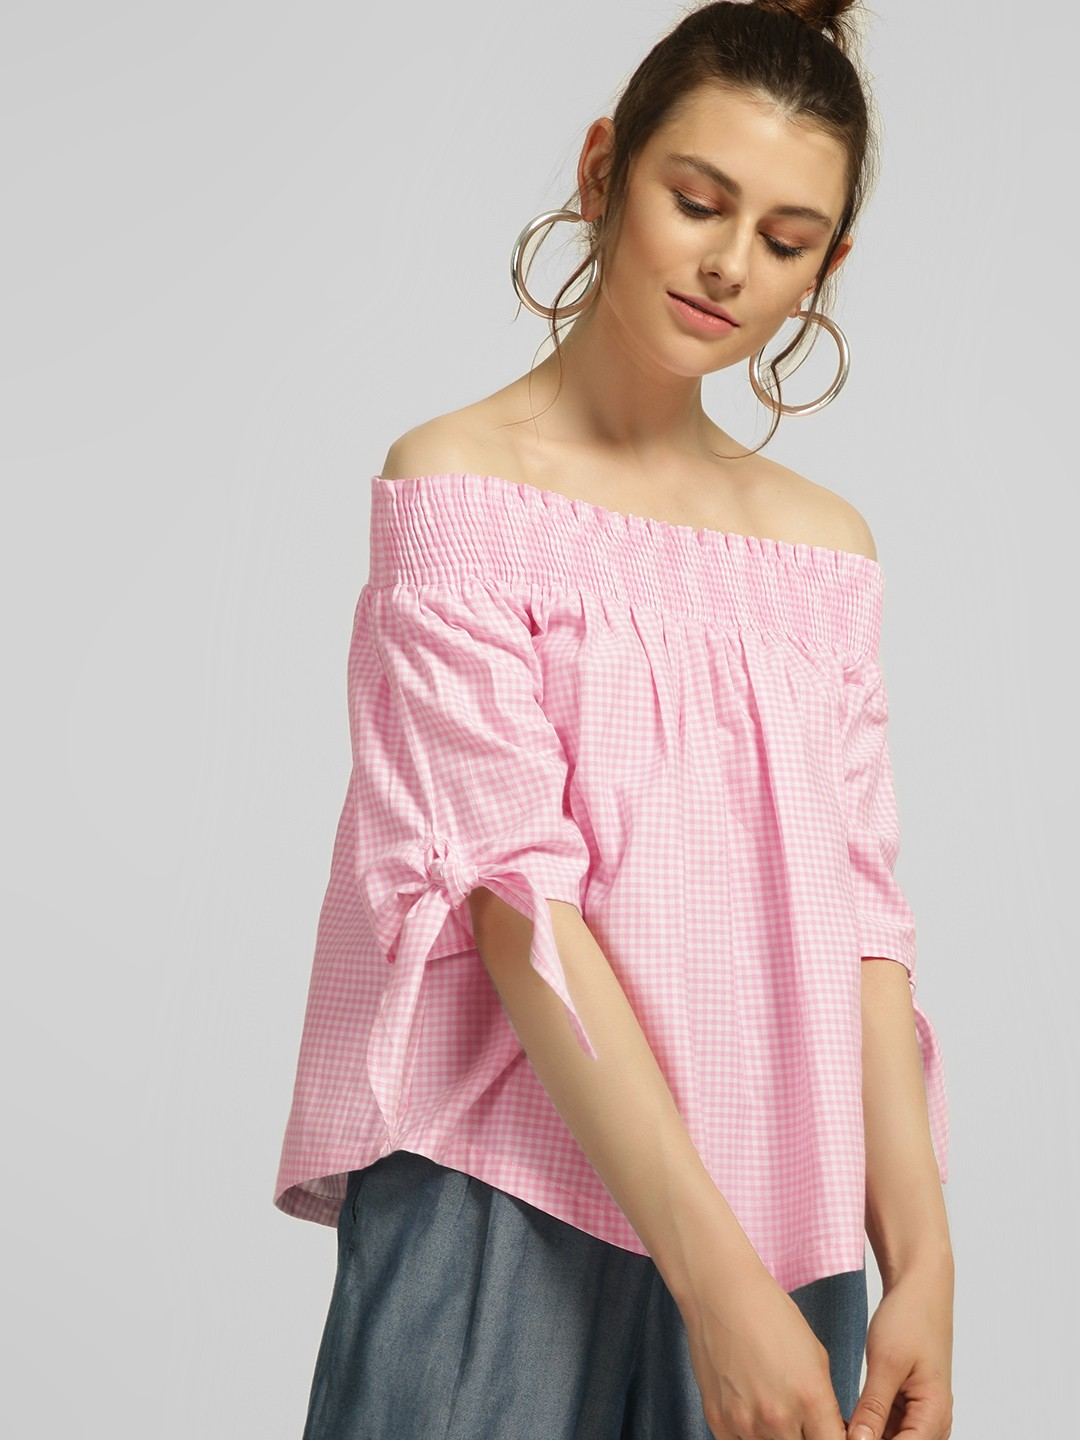 Blue Sequin Pink Gingham Check Off-Shoulder Top 1